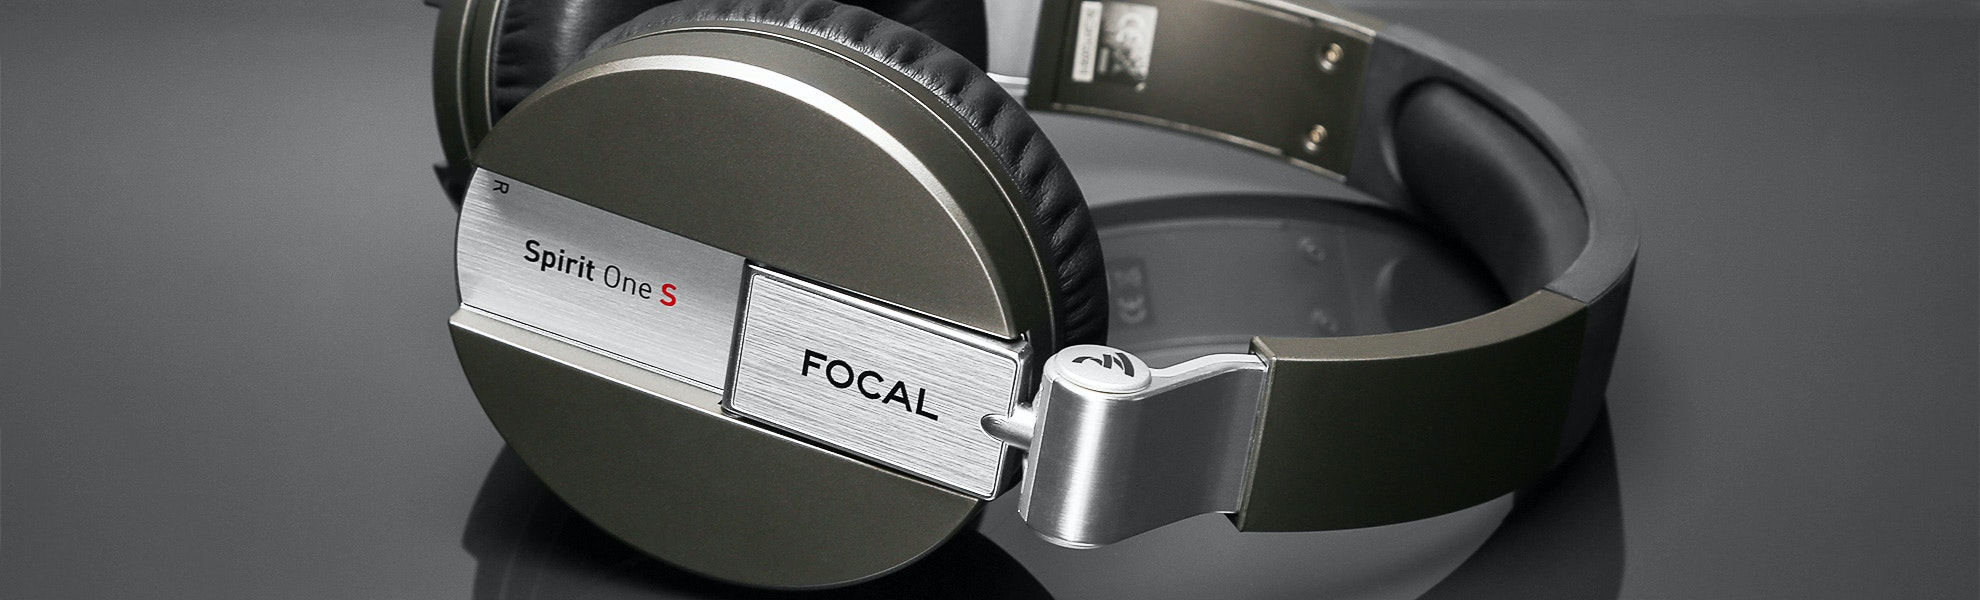 Focal Spirit One S Headphones